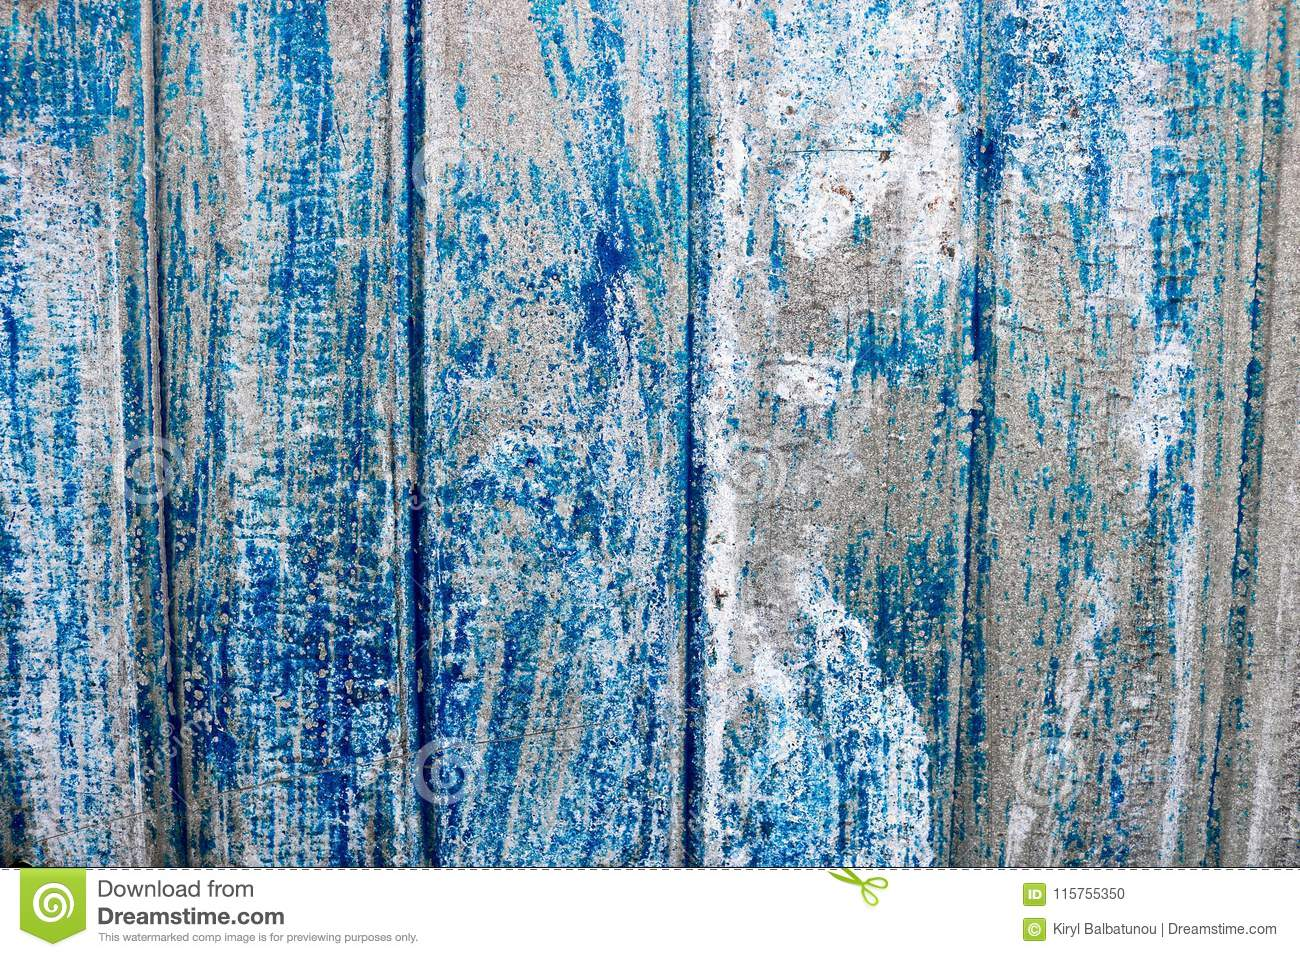 Bright blue saturated relief texture of a beautifully painted metal surface with vertical stripes and shabby erased paint